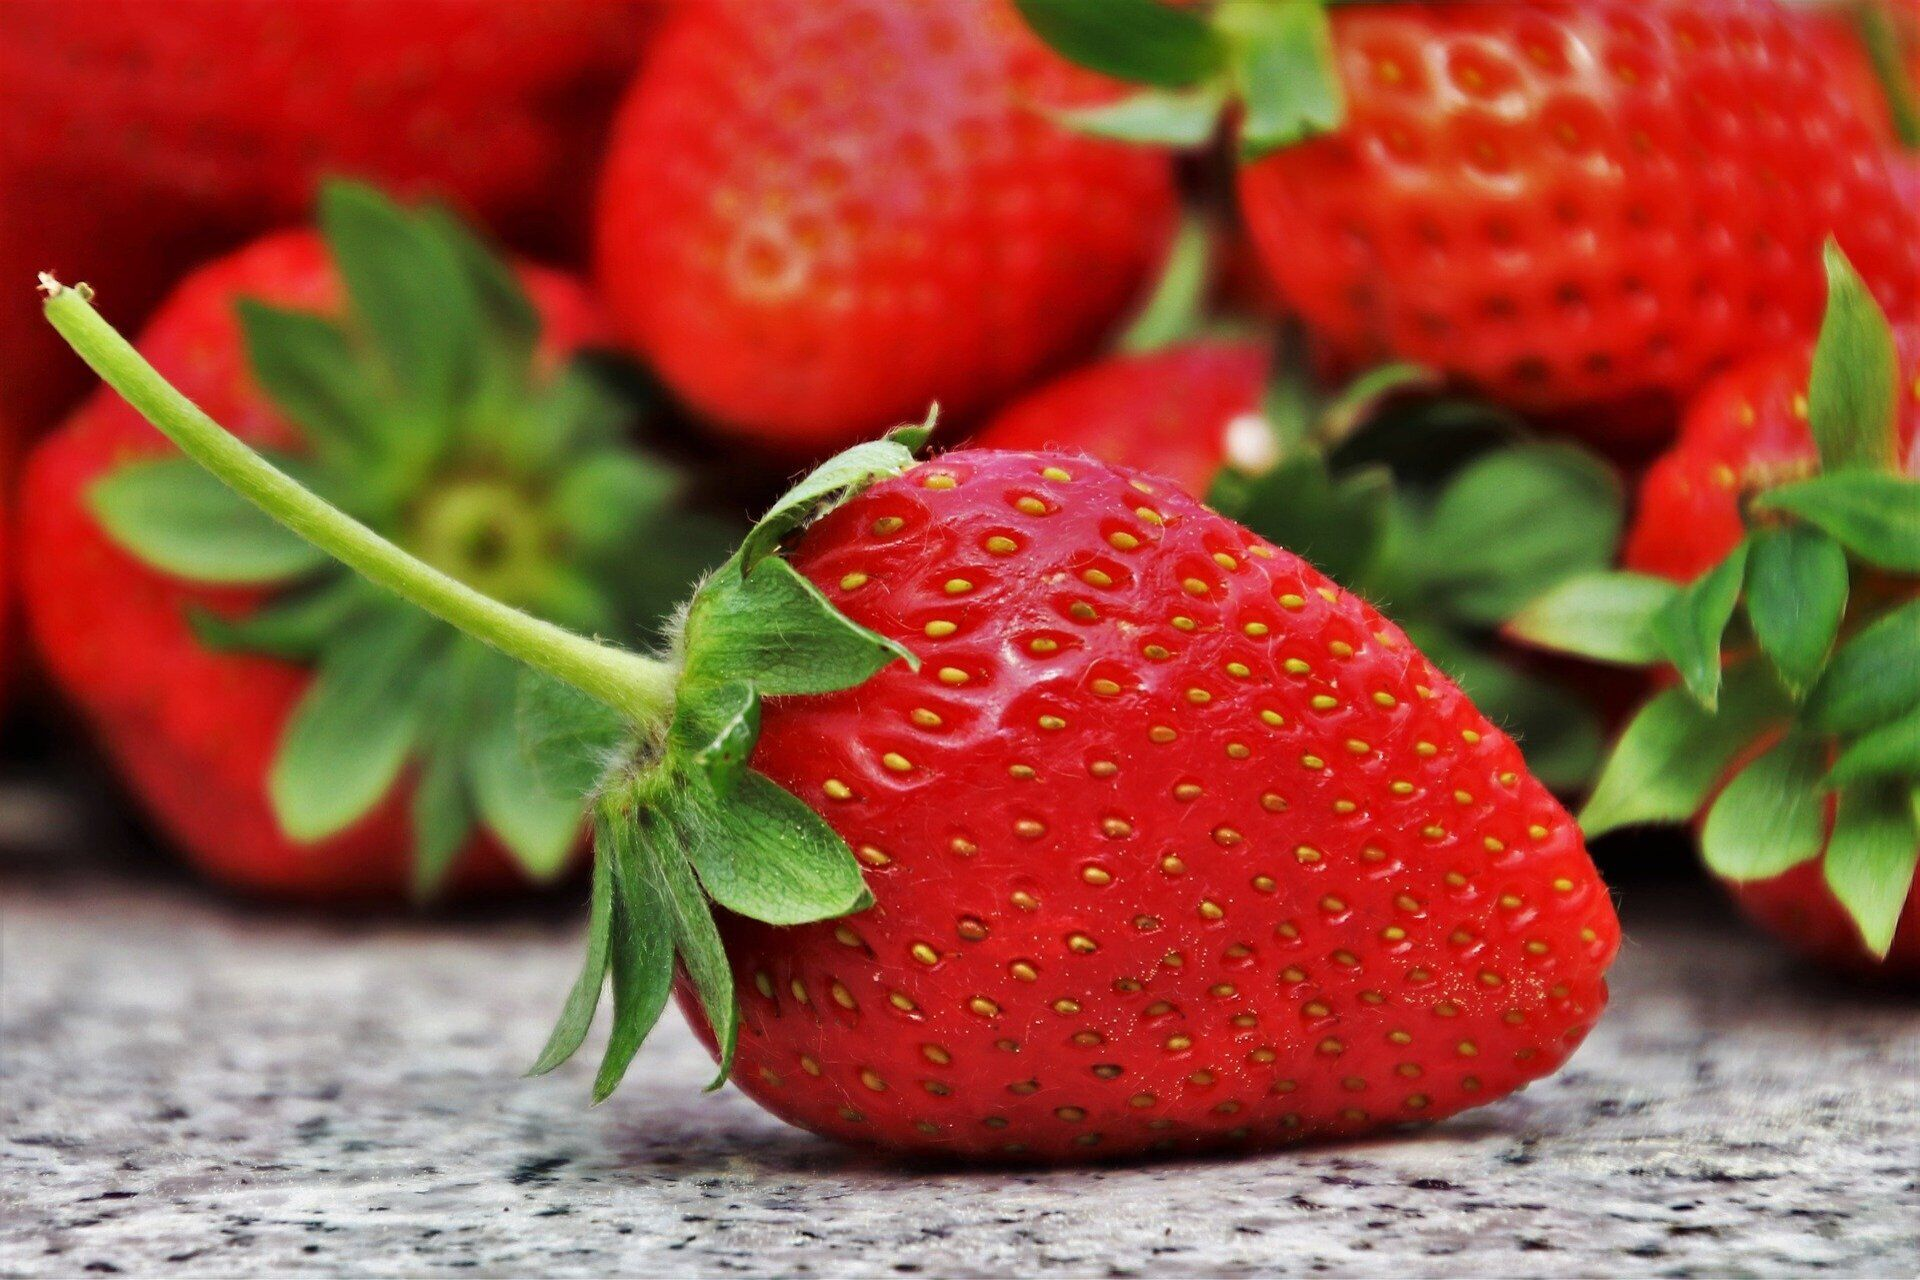 strawberries-3359755_1920 (1)